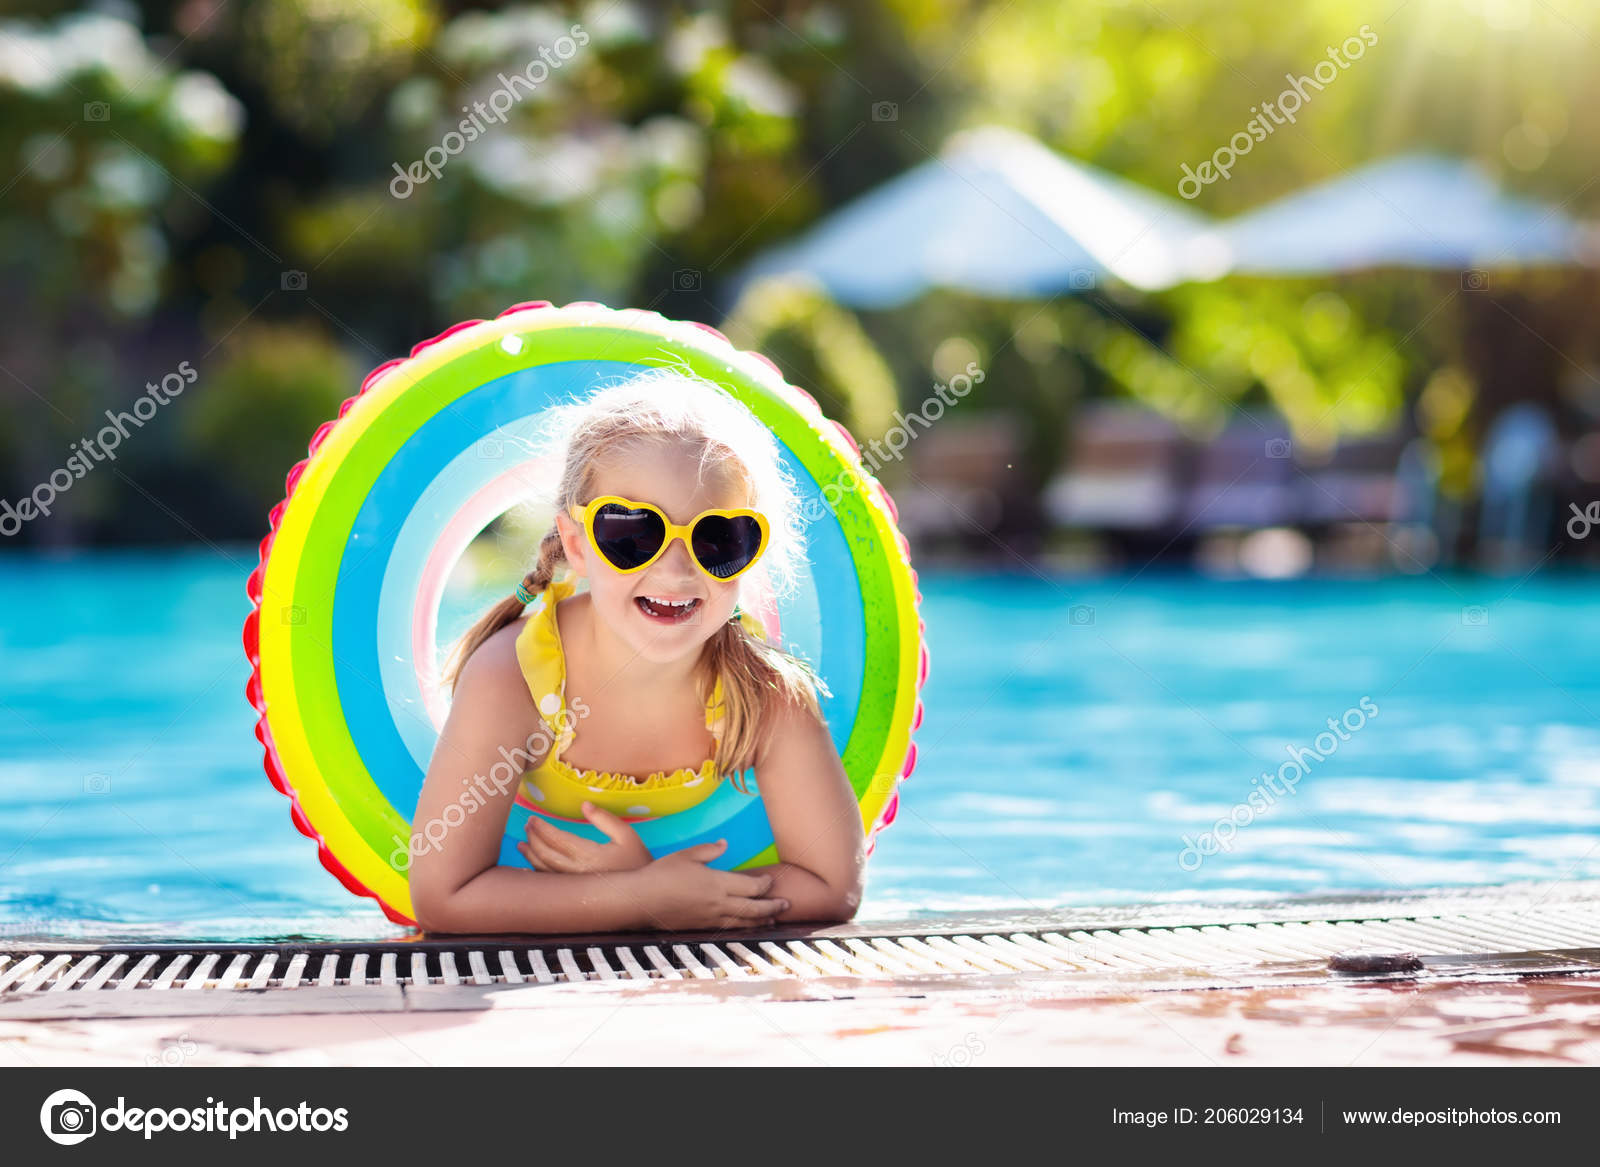 ba9ee3c2cf Child Goggles Swimming Pool Little Girl Learning Swim Dive Outdoor — Stock  Photo